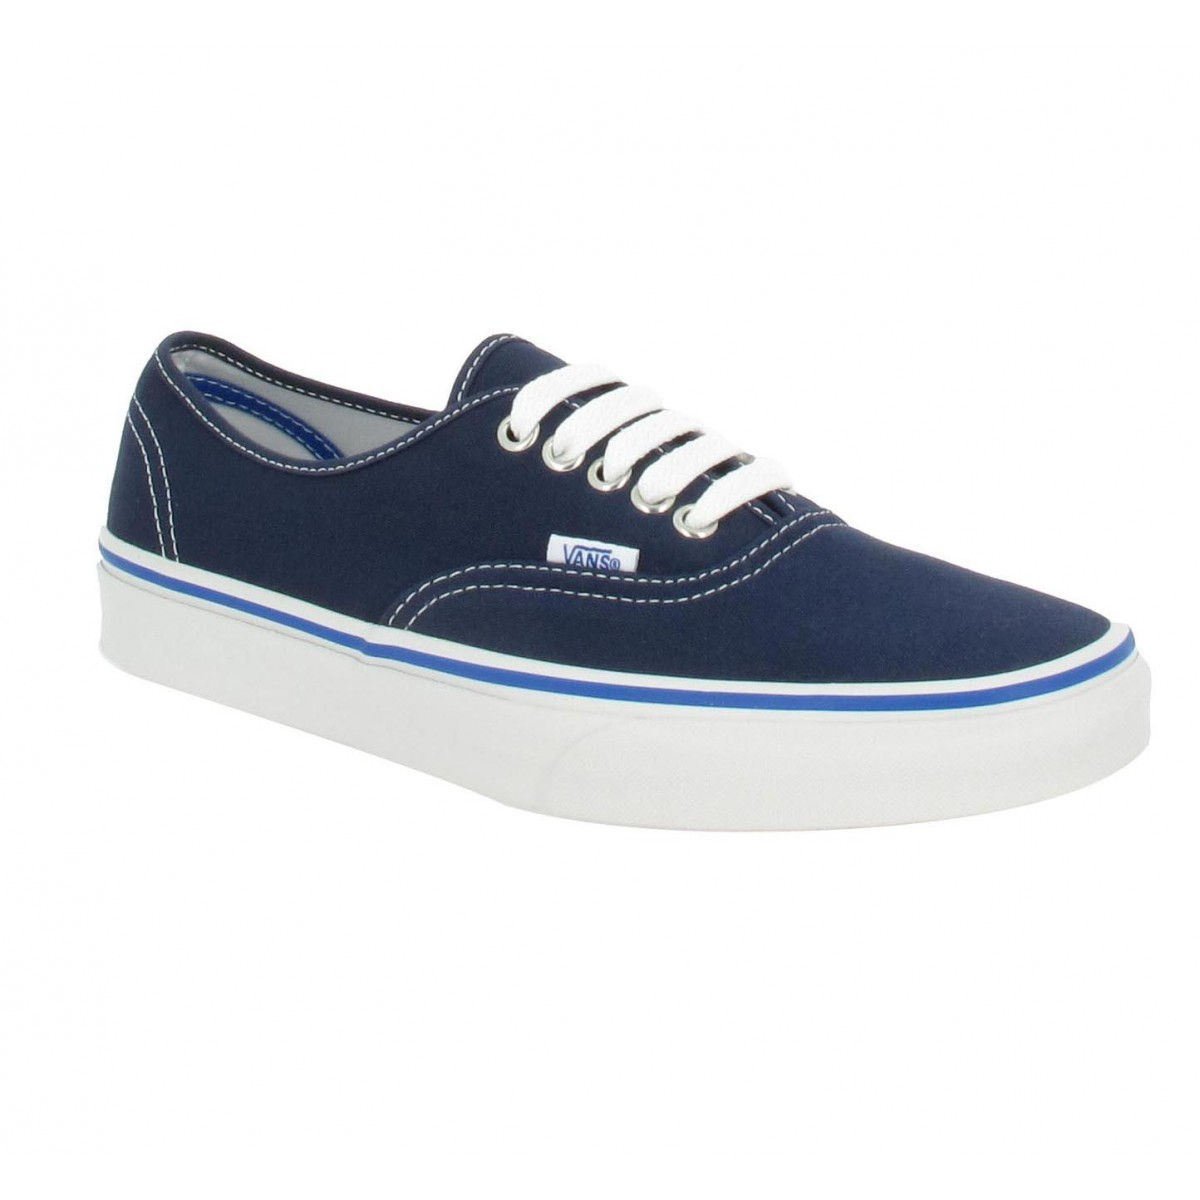 Baskets VANS Authentic toile Femme Bleu Nautical